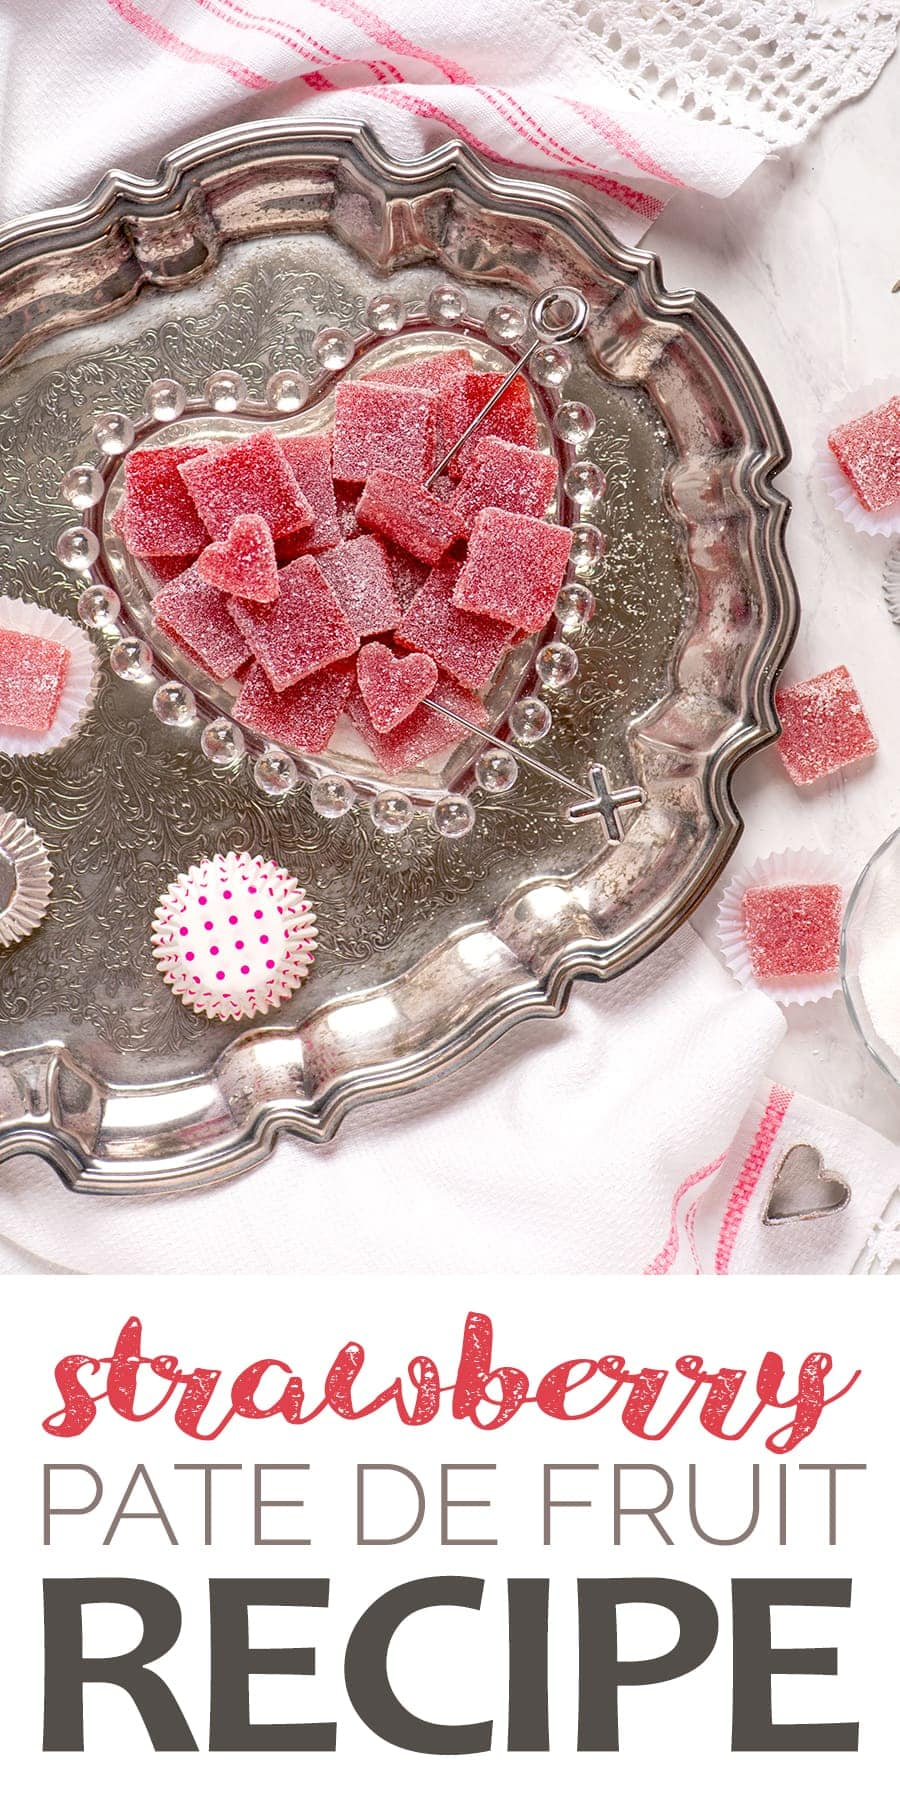 Strawberry Pate de Fruit Pin 2 - Strawberry Pate de Fruit {Fruit Jelly Candy}